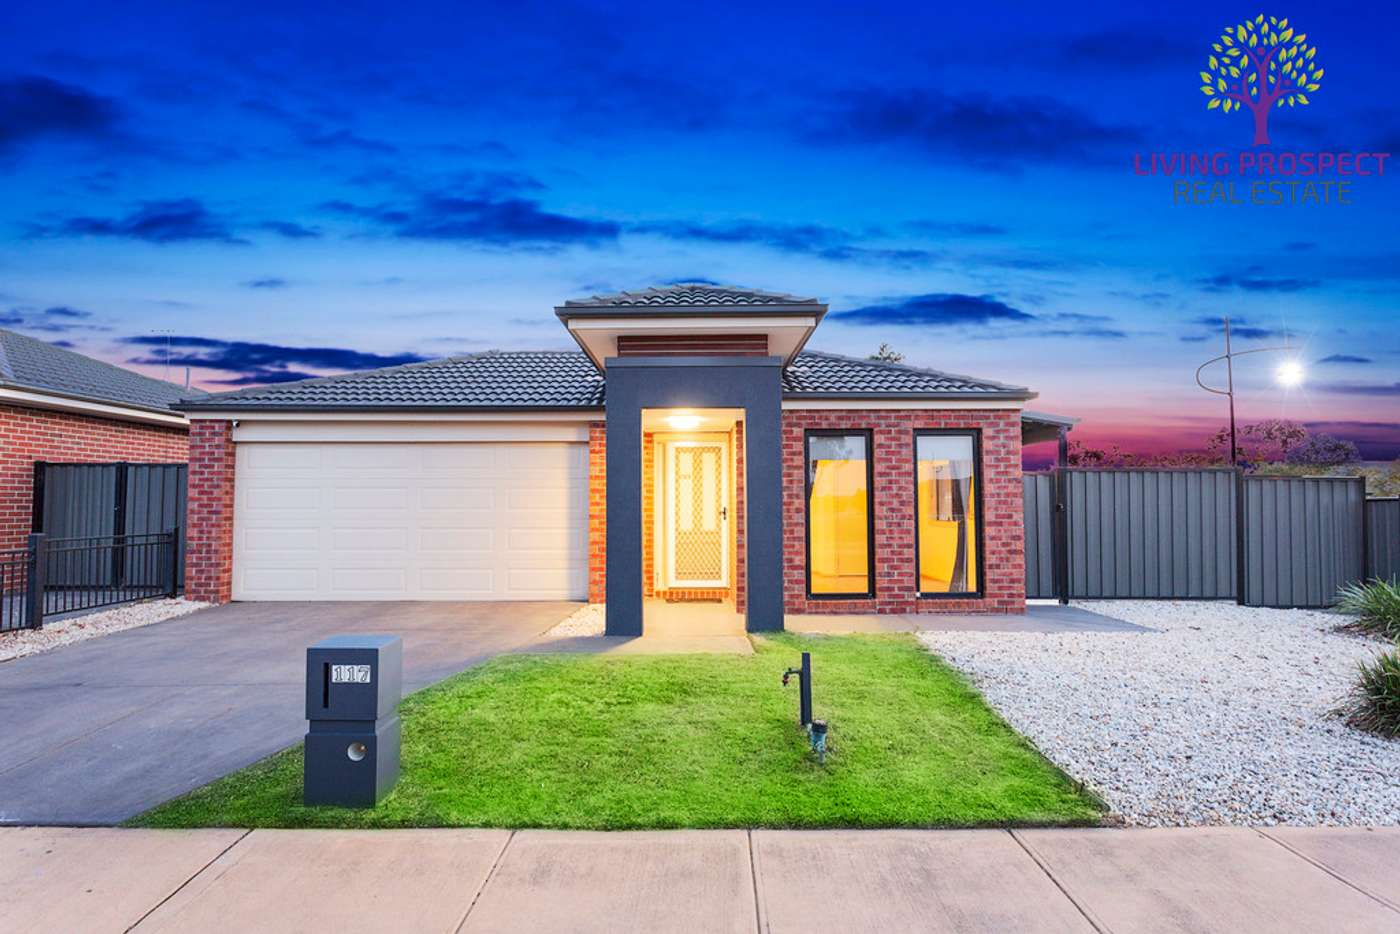 Main view of Homely house listing, 117 Tom Roberts Parade, Point Cook VIC 3030